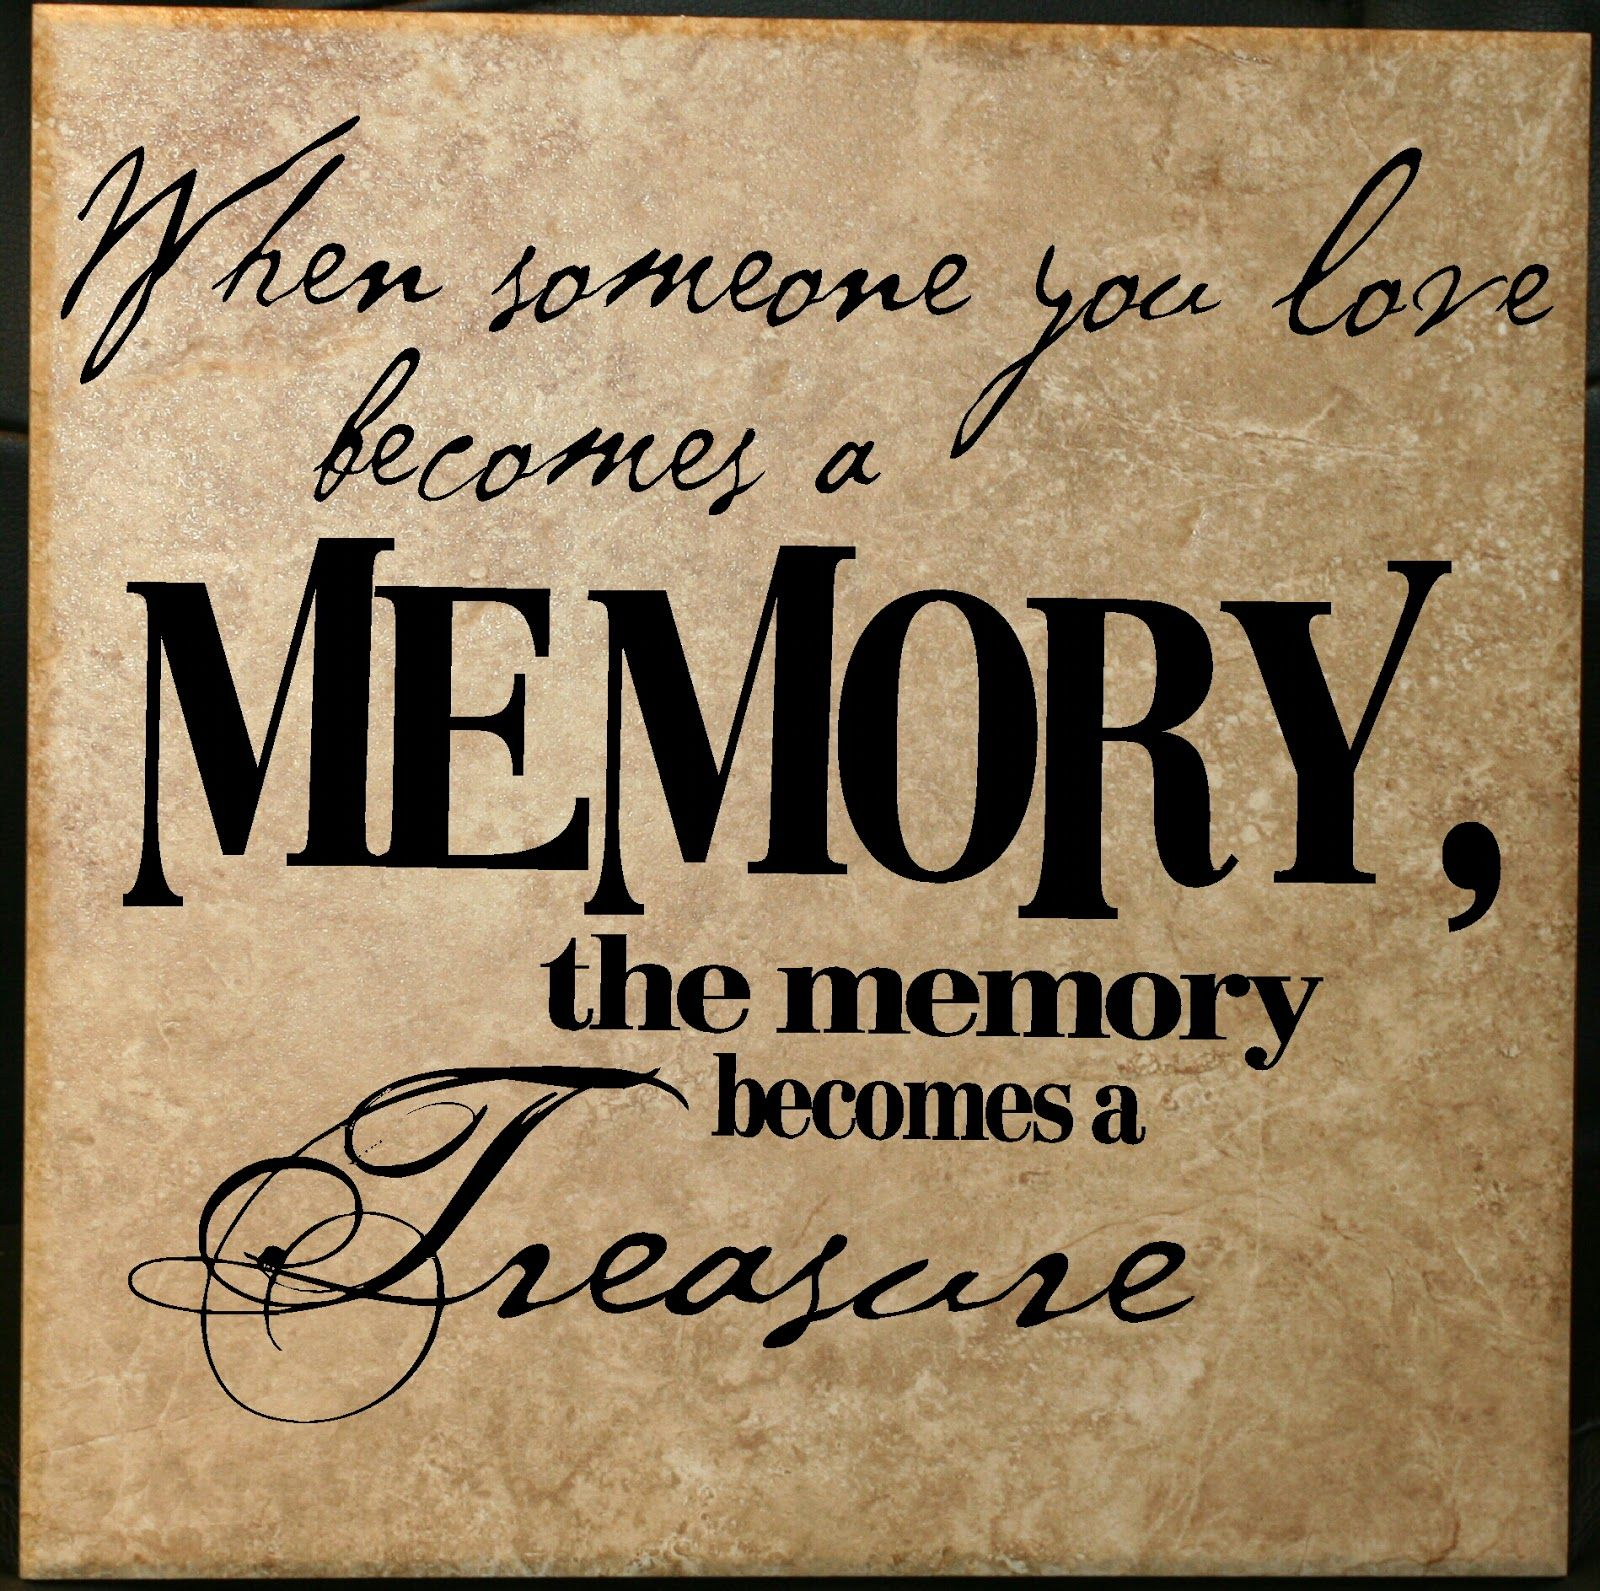 Quotes For Loss Of A Loved One The Memory Becomes A Treasure  Words To Remember  Pinterest